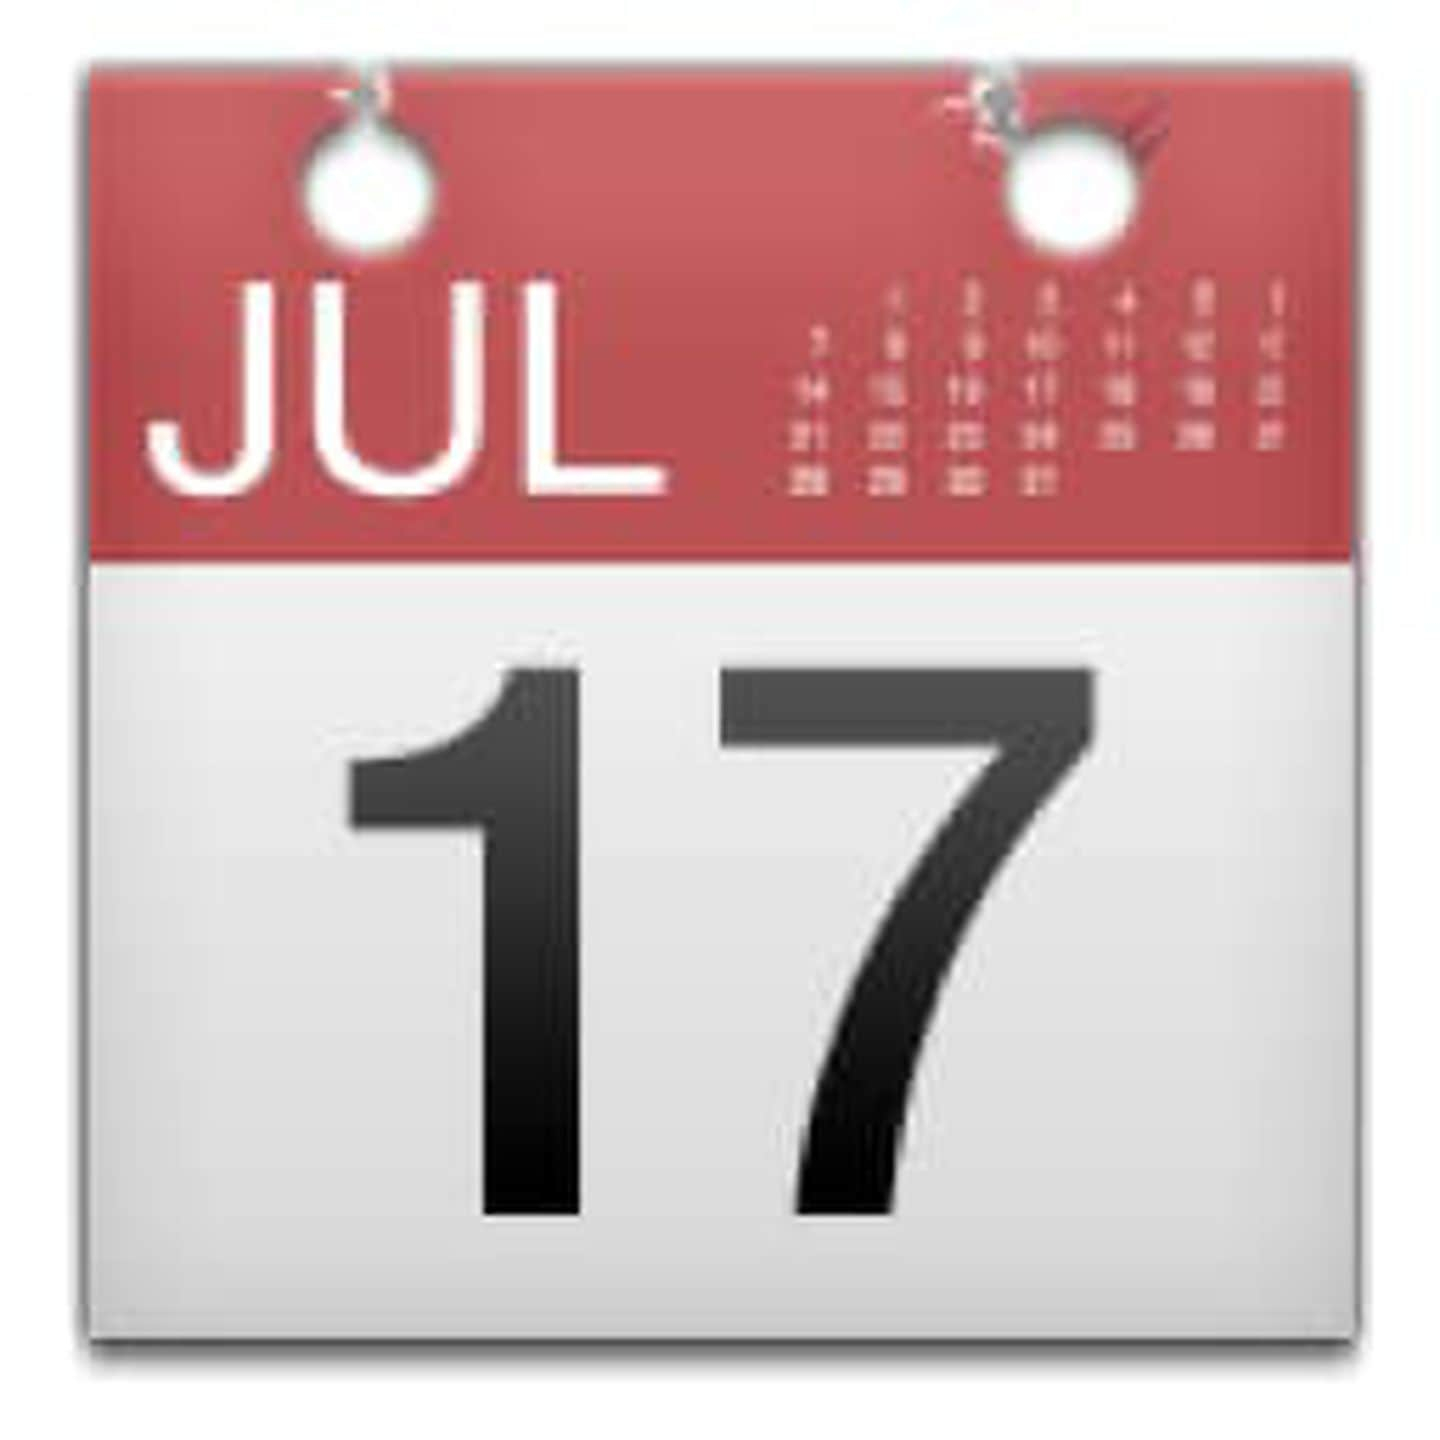 Why Is July 17 The Date On The Emoji Calendar?  The with Calendar Emoji Png